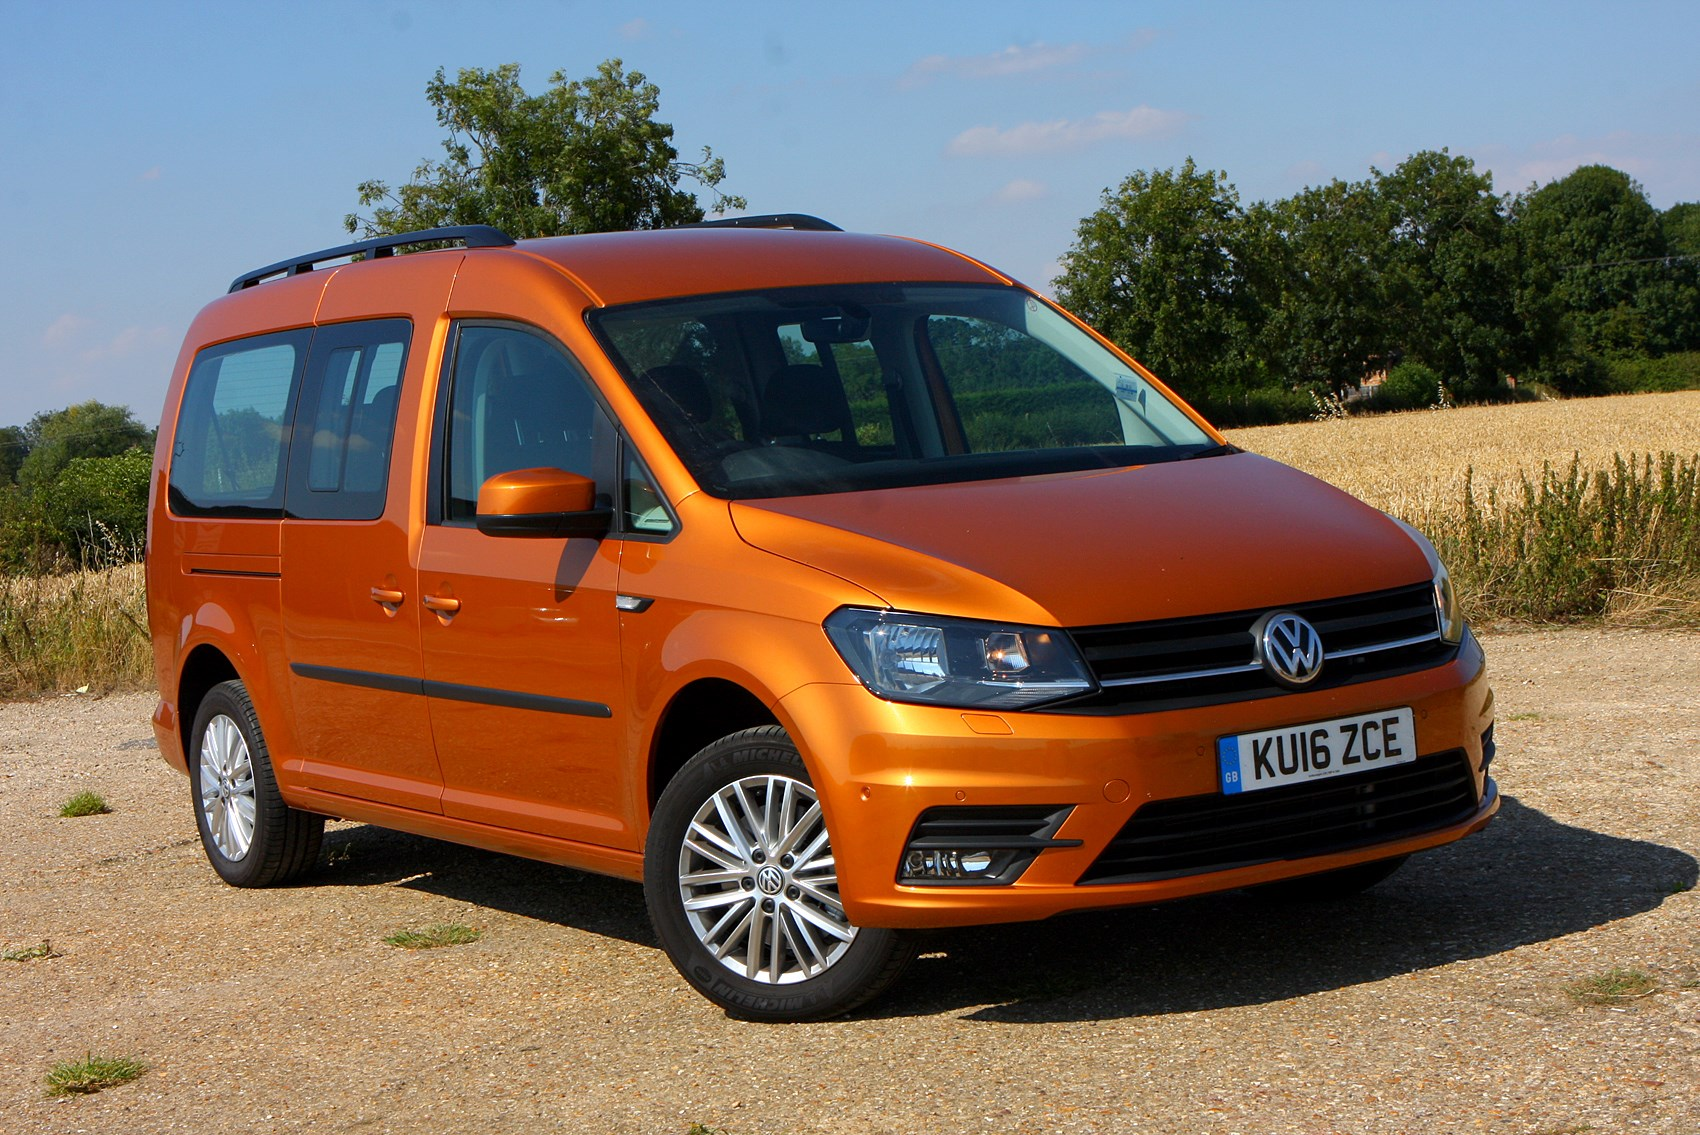 Top Volkswagen Caddy Maxi Life Estate Review (2015 - ) | Parkers RT03